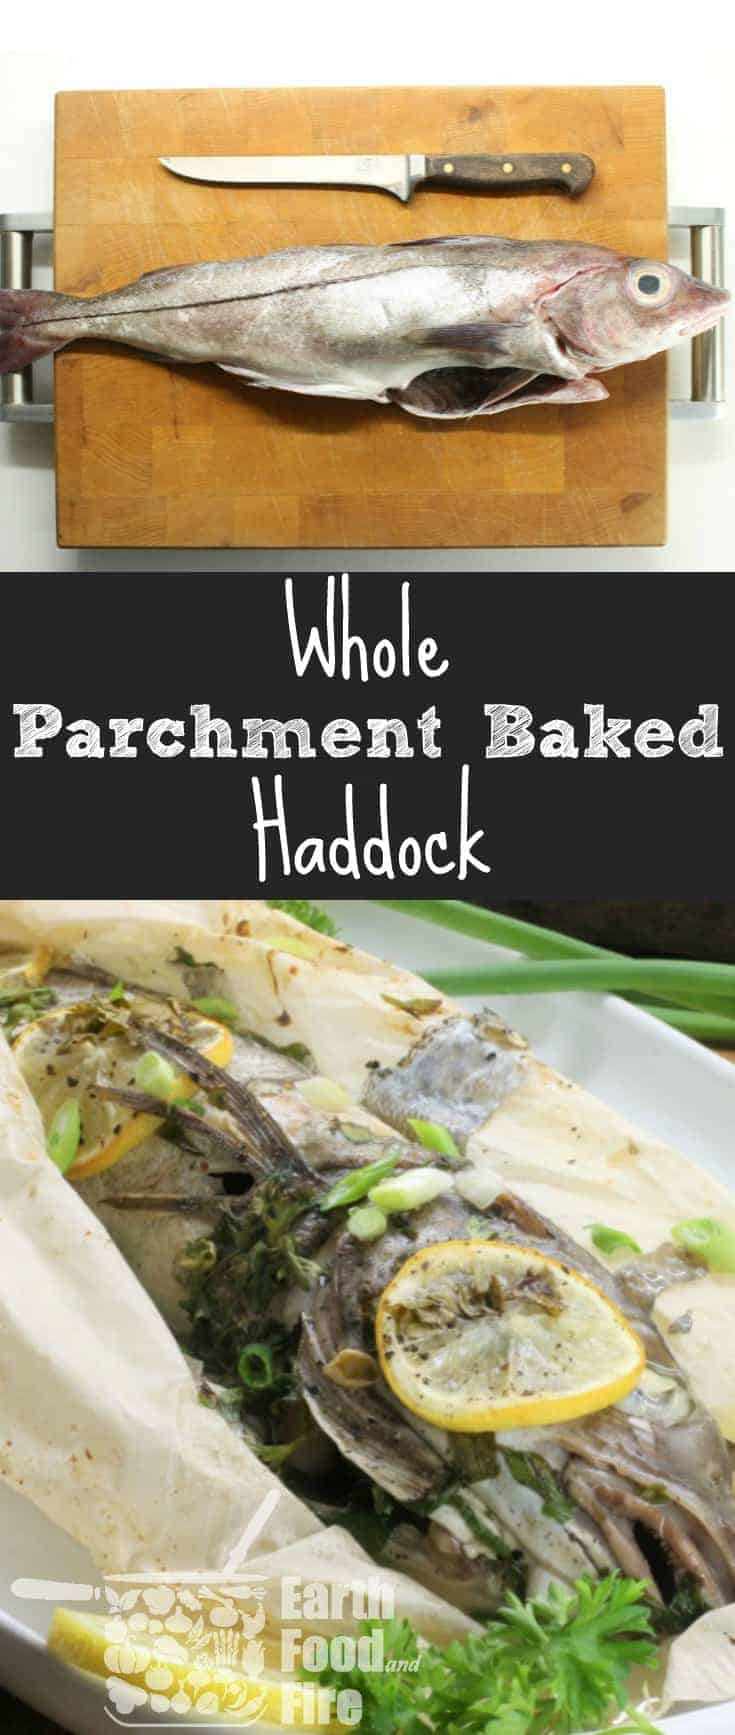 Baking fresh haddock in parchment ensures the fish remains moist & all the flavour stays in the dish.  The perfect 20 minute meal!